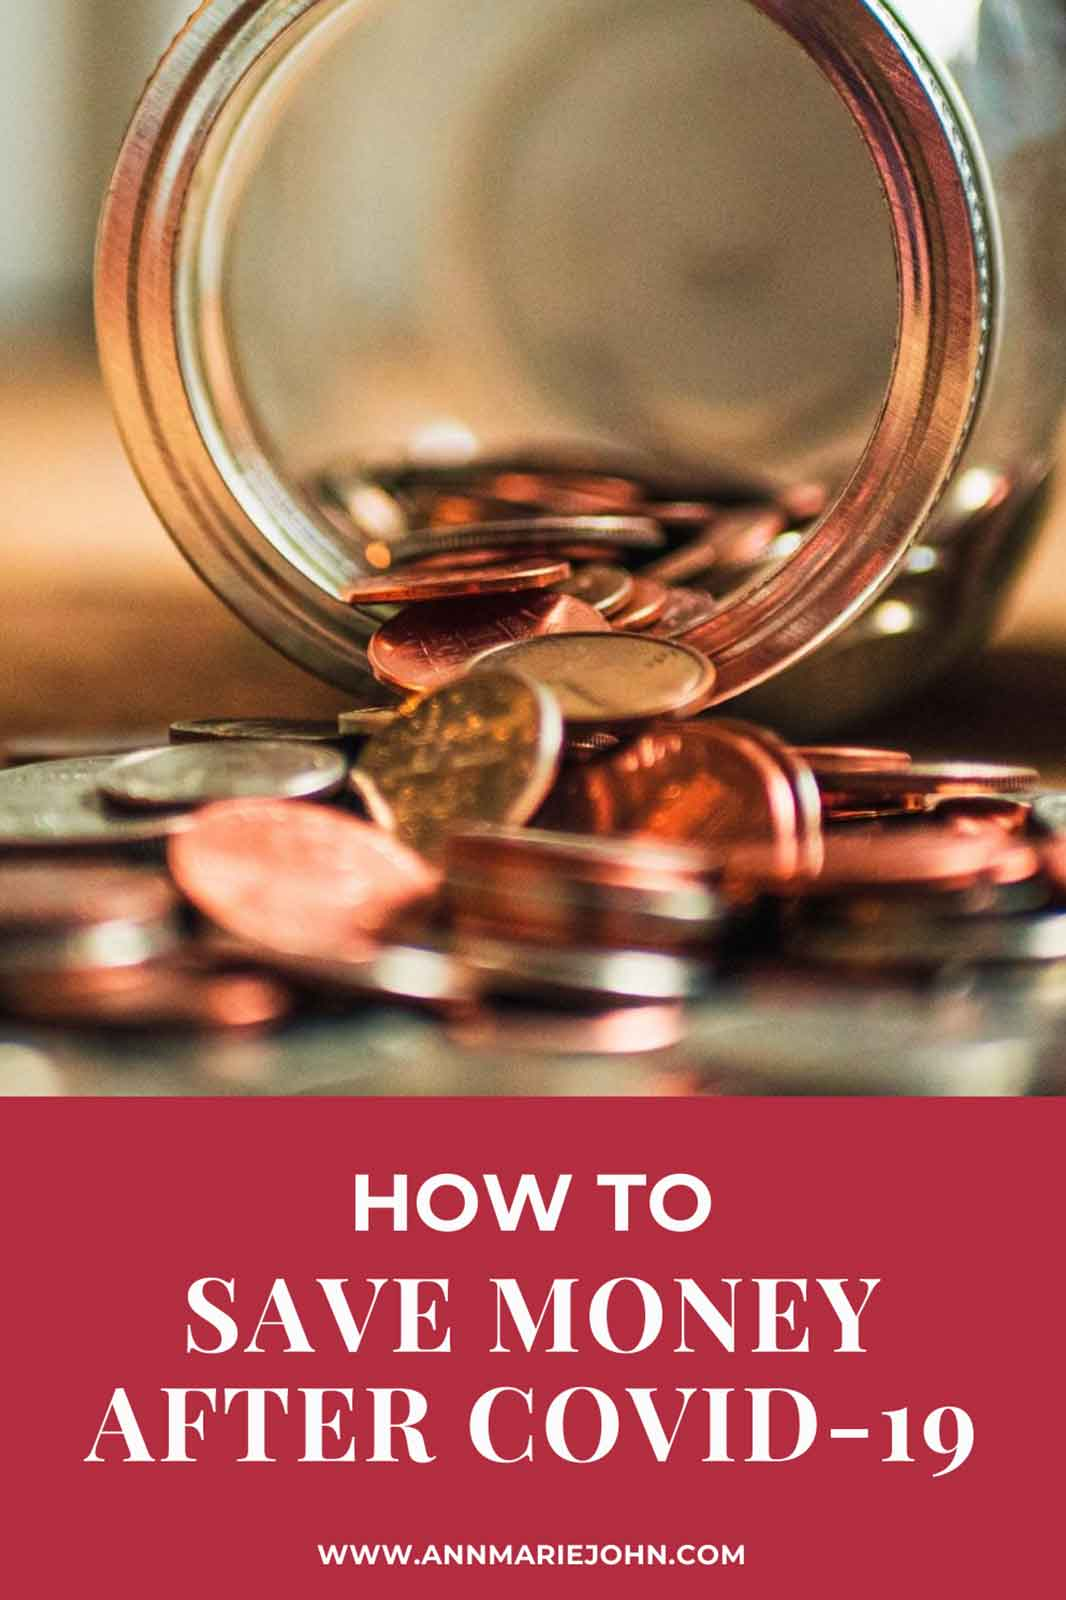 How to Save Money After COVID-19